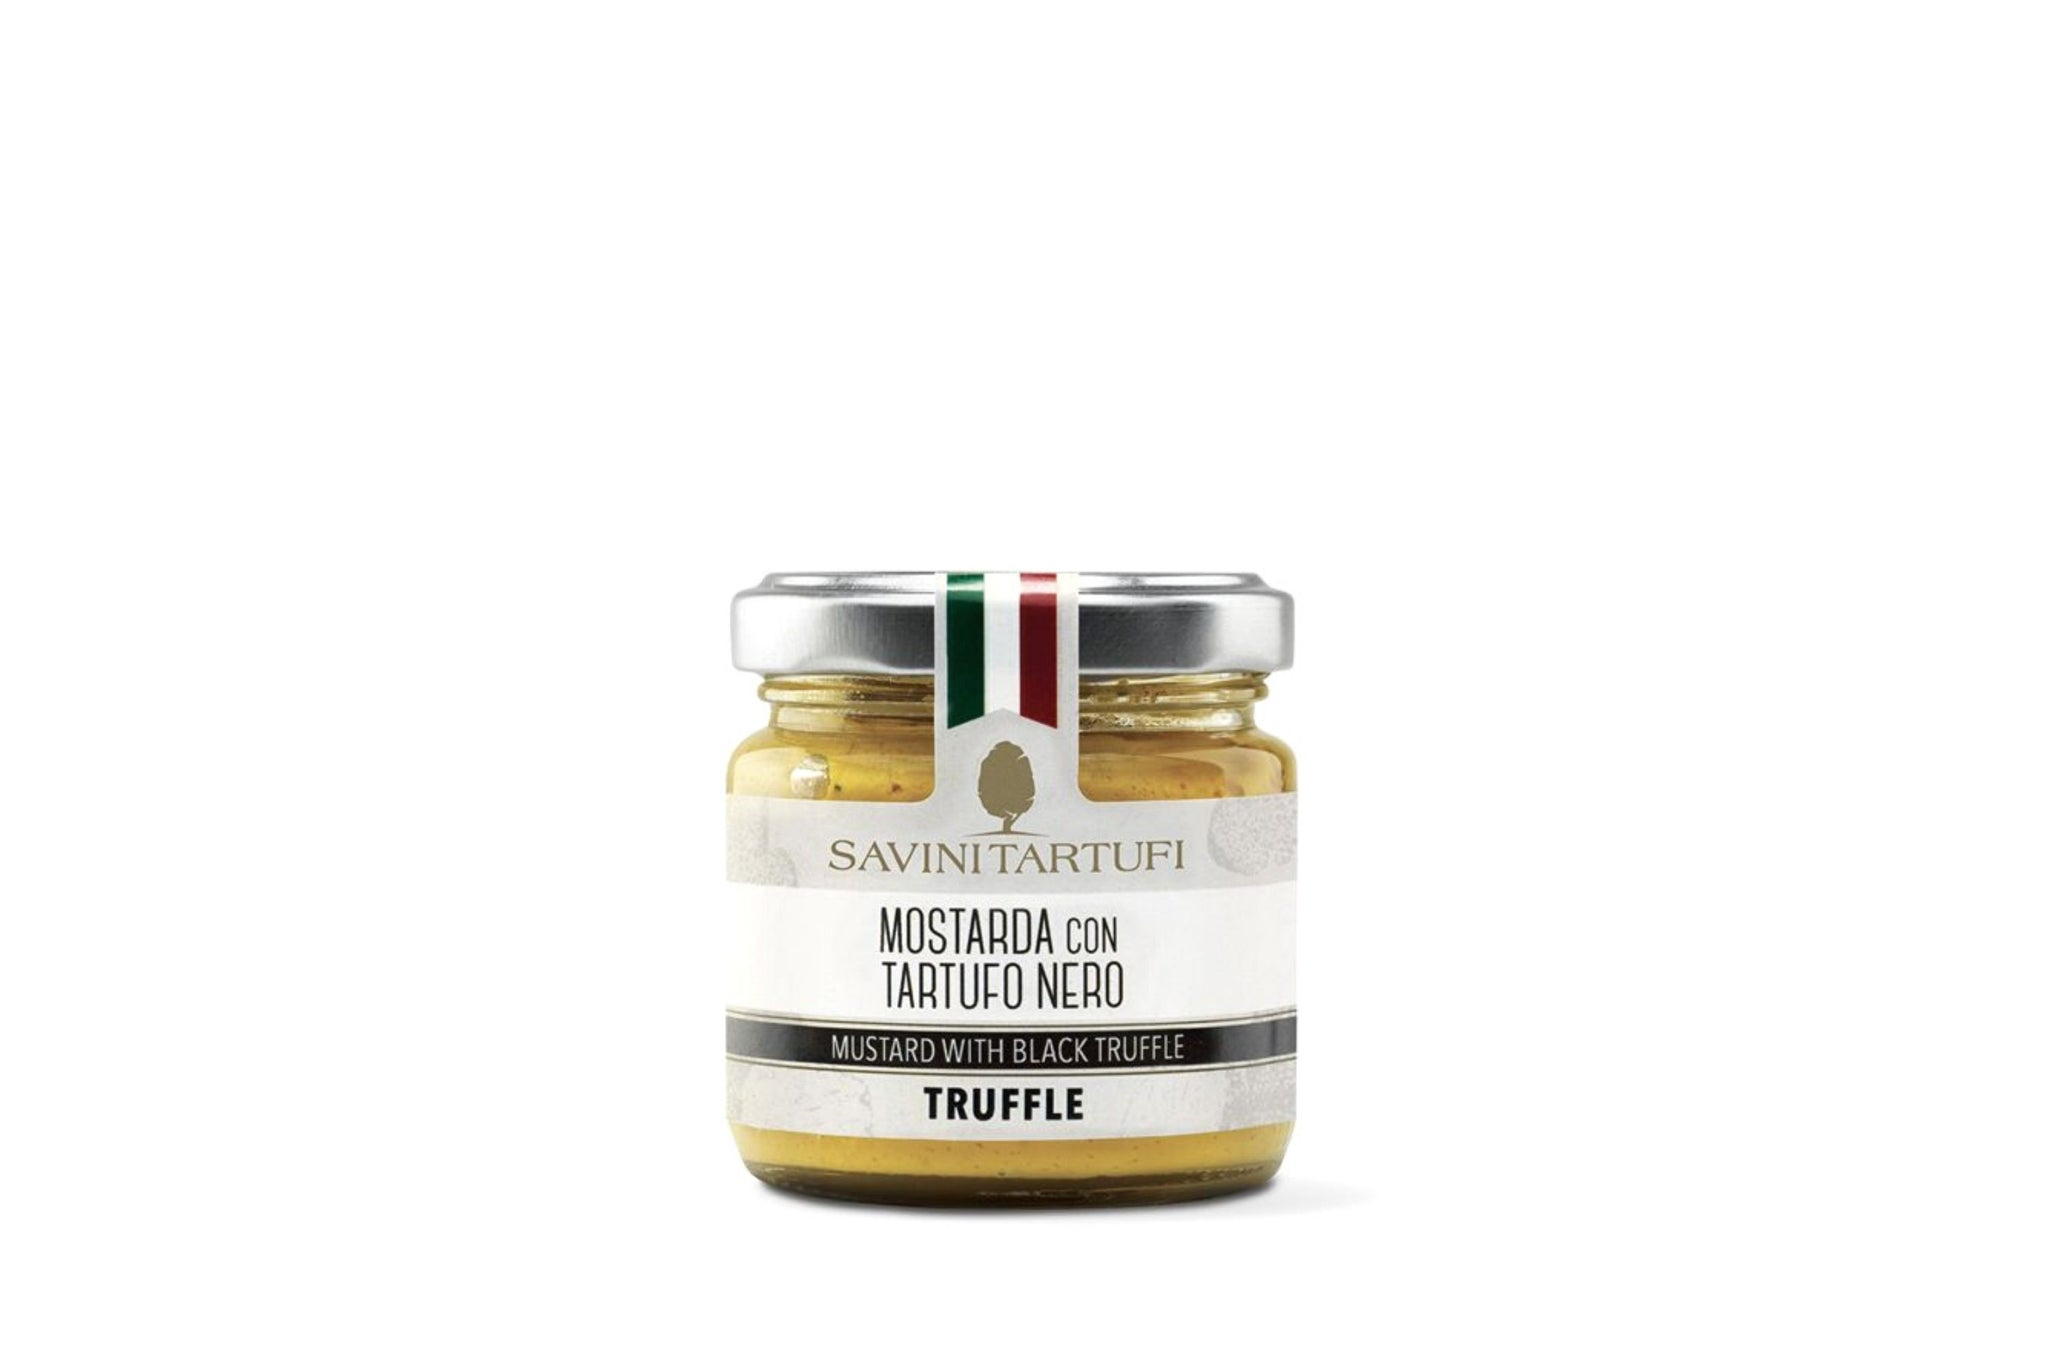 Savini Tartufi Mustard with Black Truffle Cream 90g